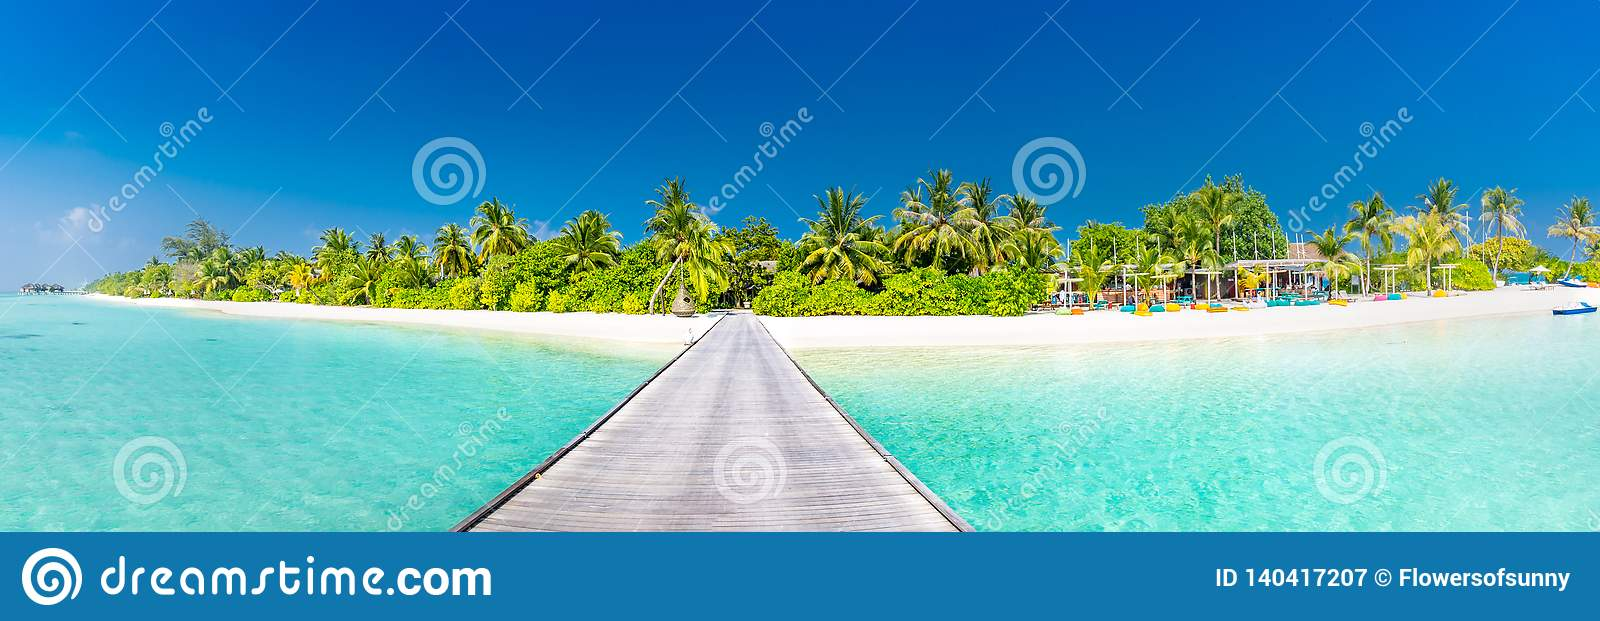 Maldives island beach panorama. Palm trees and beach bar and long wooden pier pathway. Tropical vacation and summer holiday banner